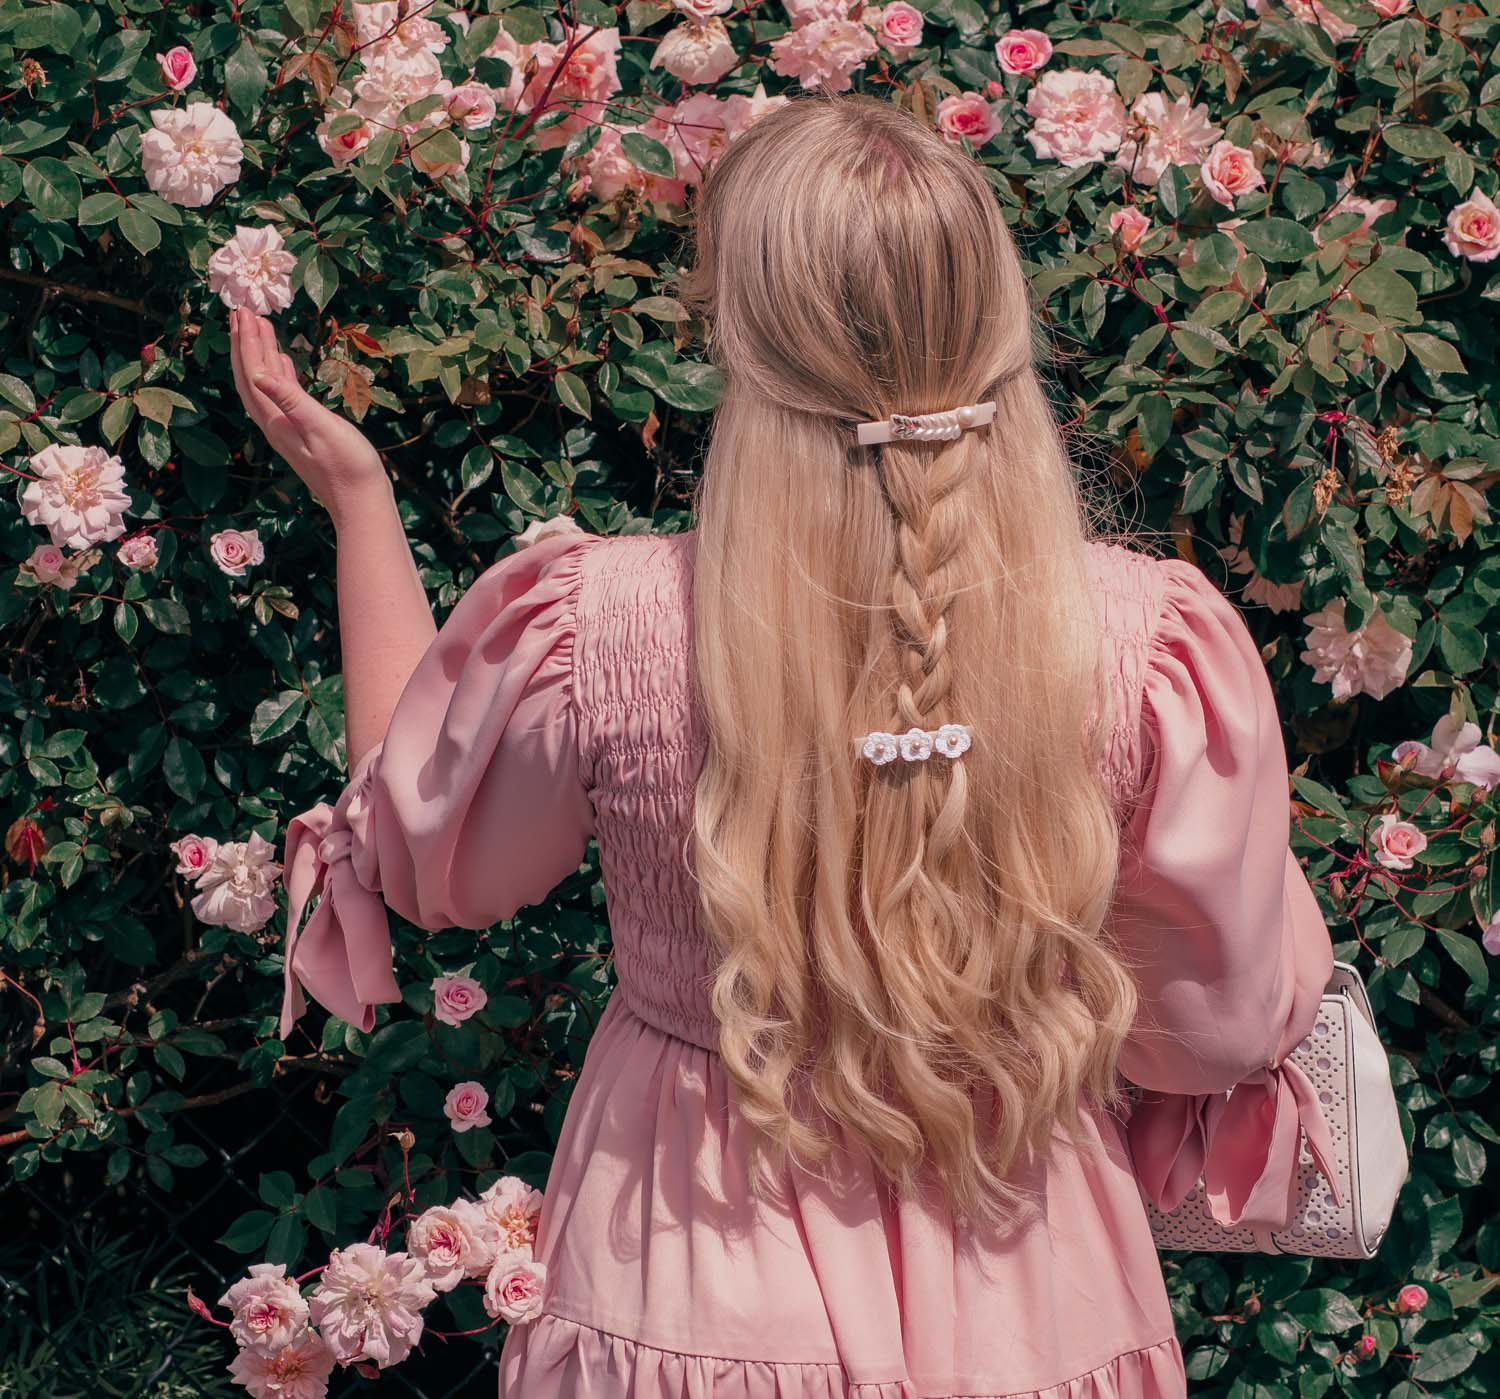 Feminine Fashion Blogger Elizabeth Hugen of Lizzie in Lace shares her September 2021 Month in Review along with a pink outfit including a Sister Jane Dress, Kate Spade Handbag and Alexandre de Paris Hair Accessories